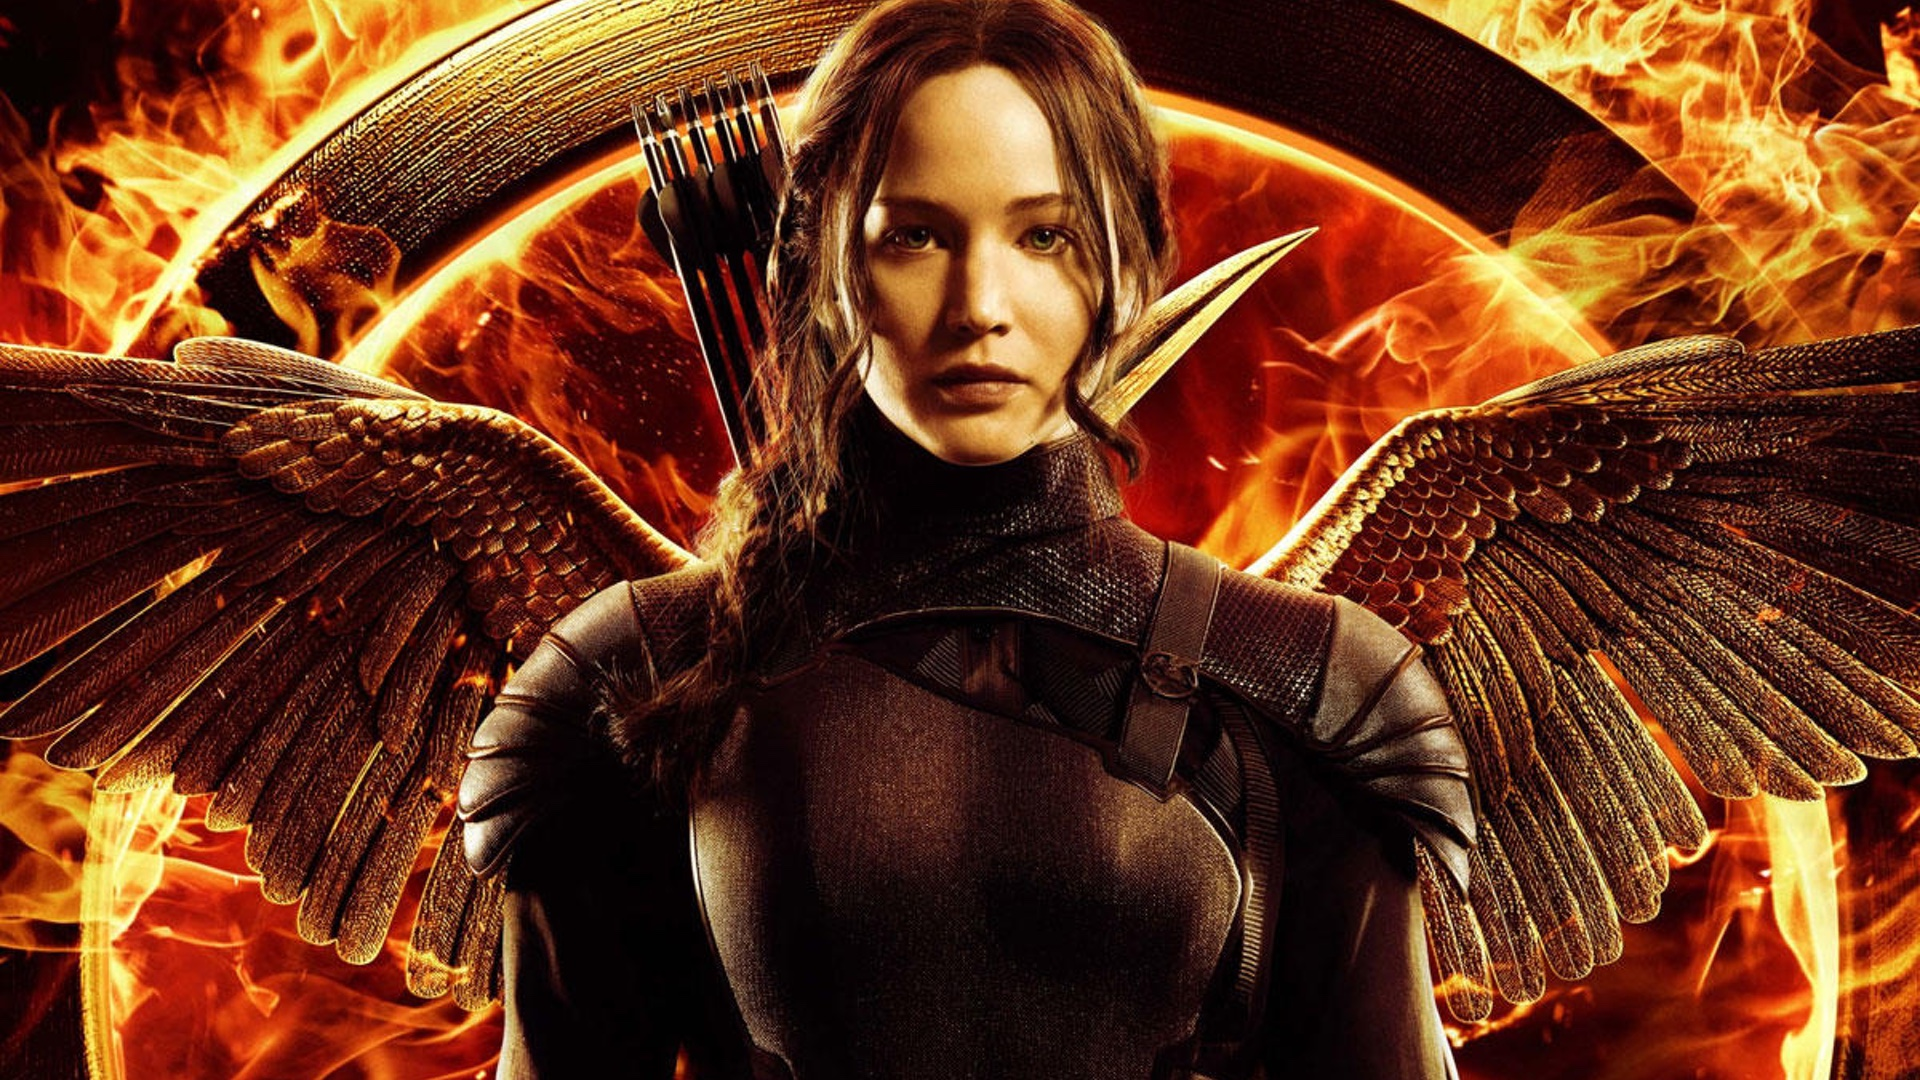 The Hunger Games Prequel movie release date